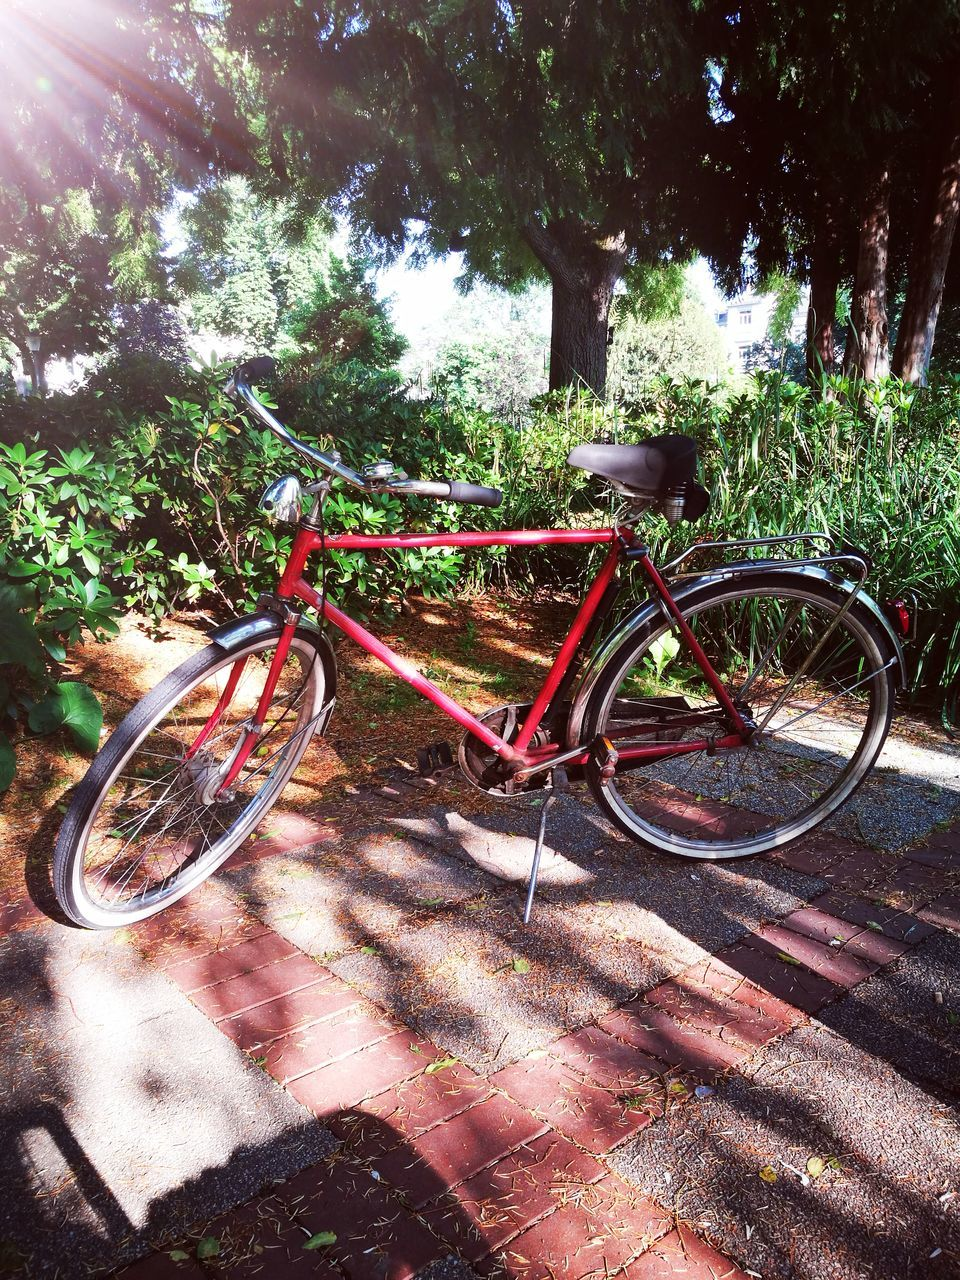 bicycle, sunlight, growth, no people, nature, outdoors, tree, day